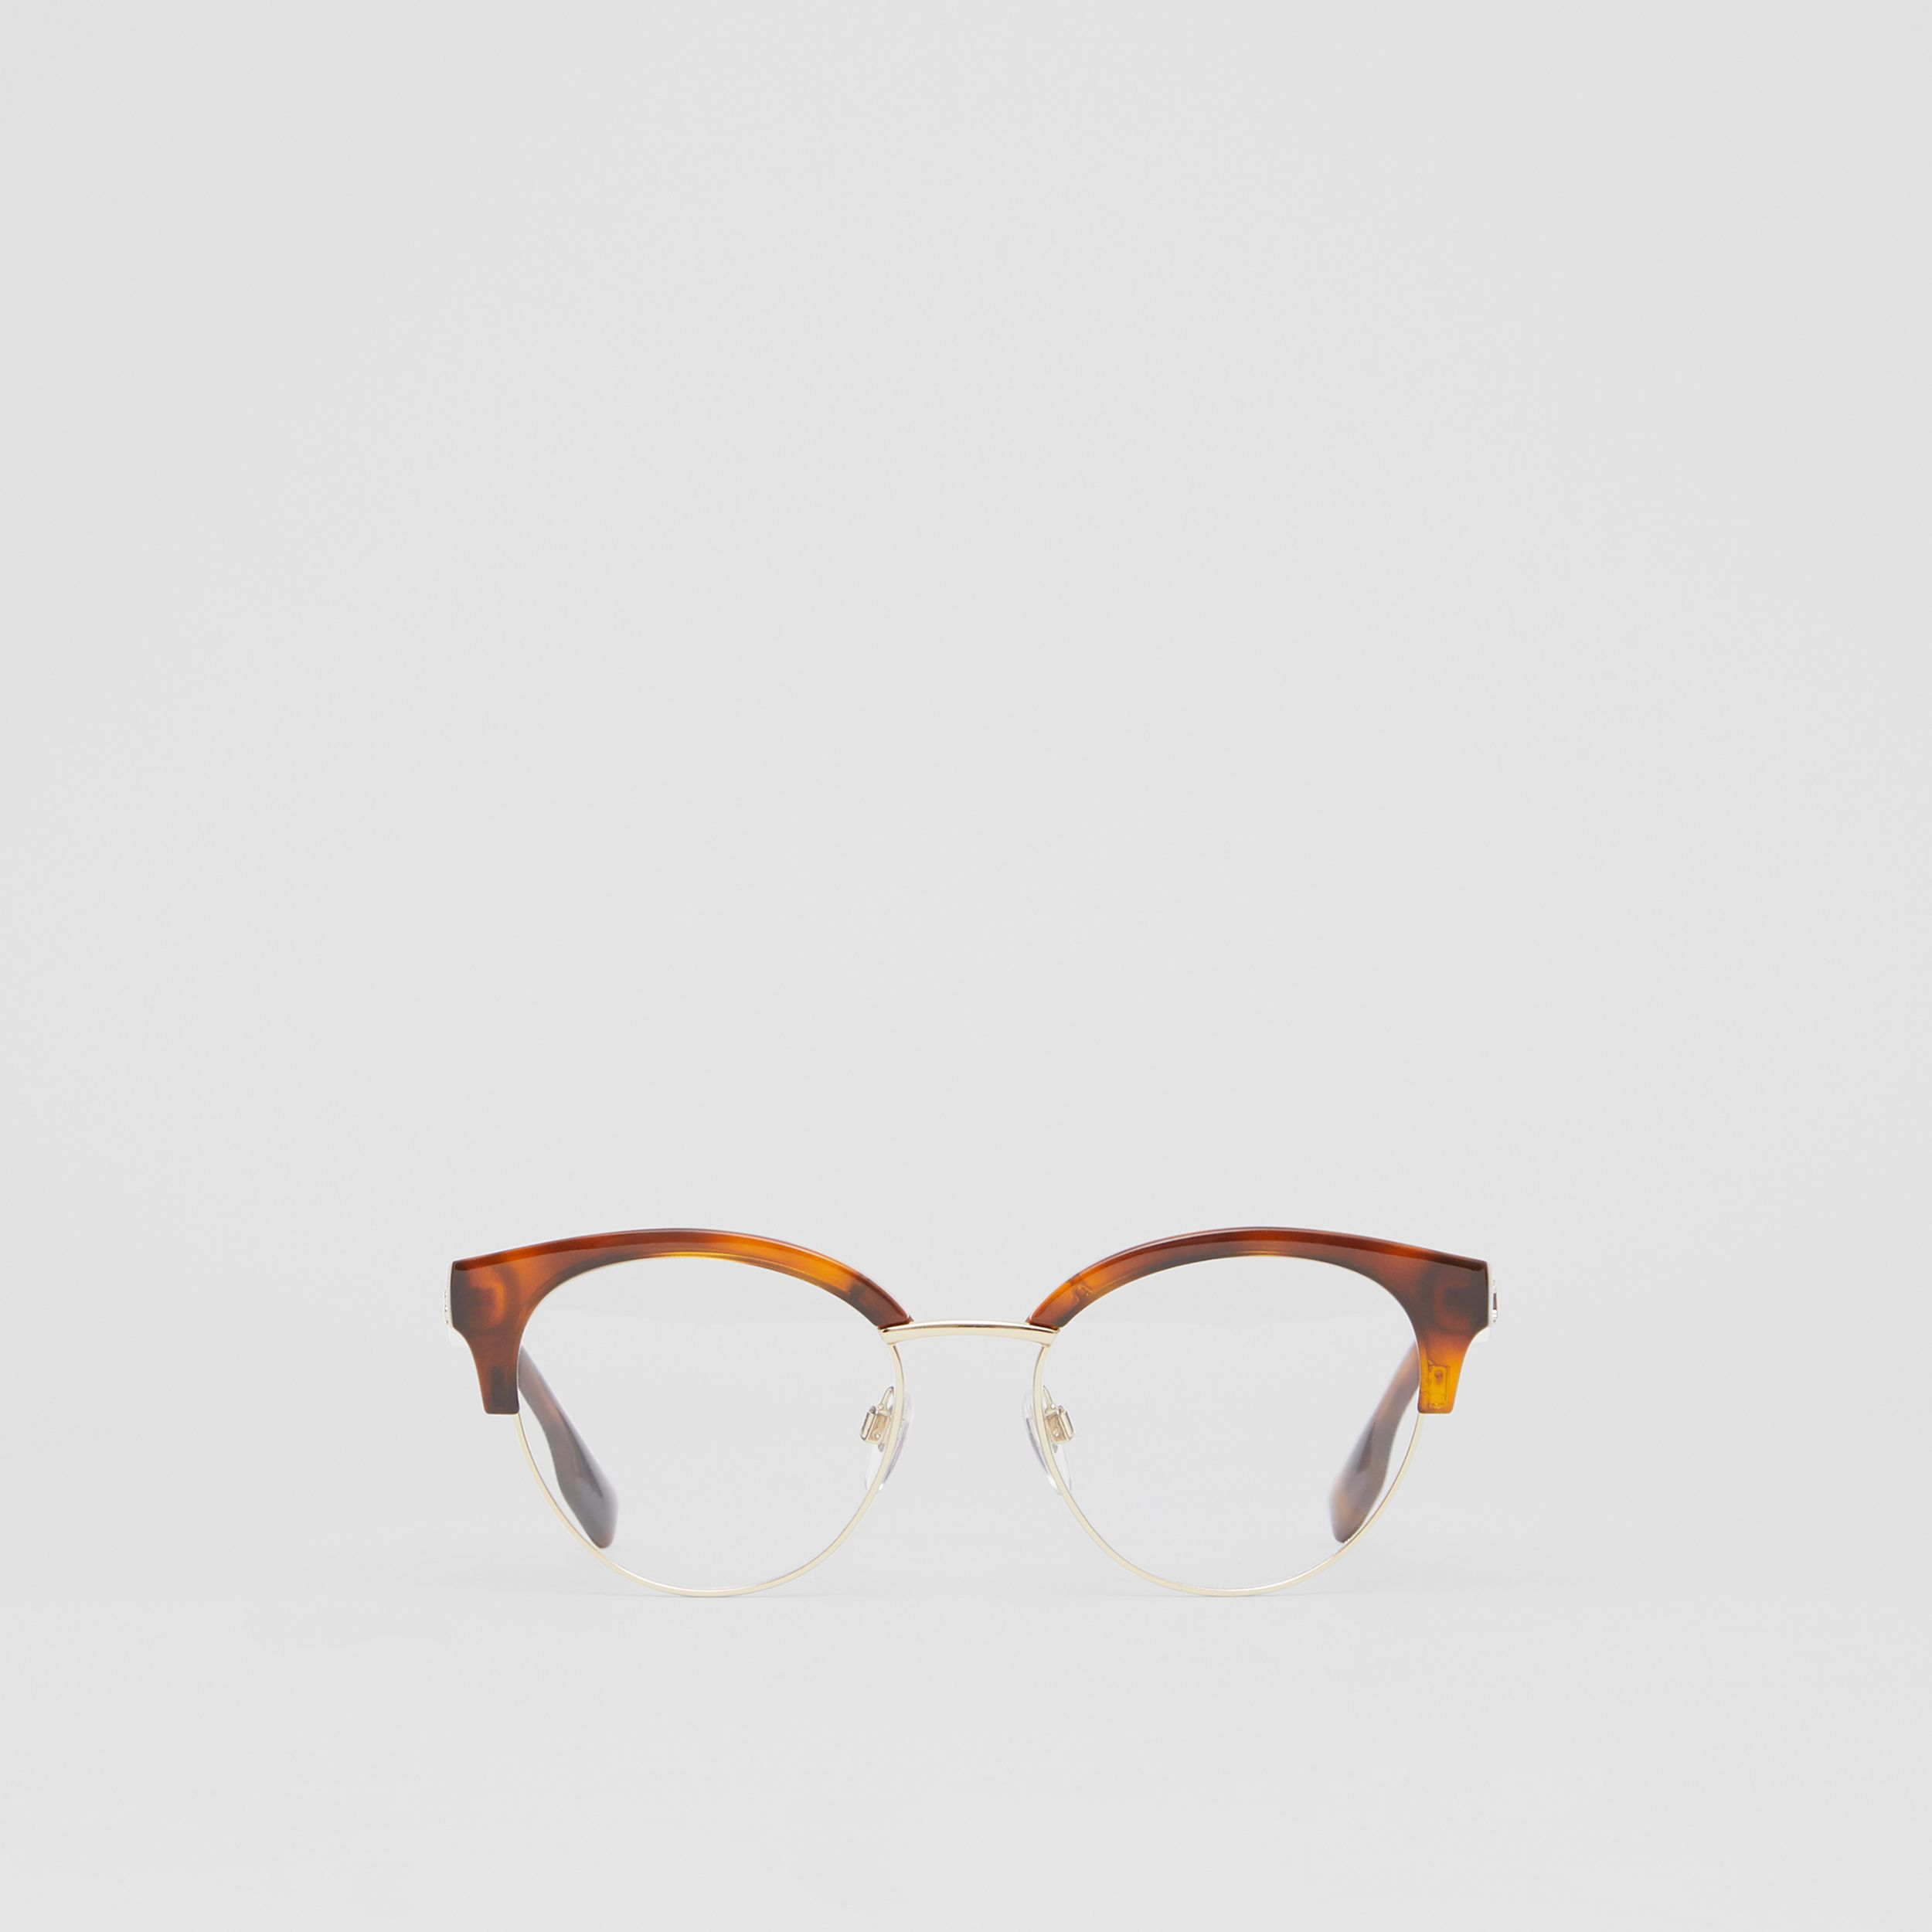 Cat-eye Optical Frames in Tortoise Amber - Women | Burberry - 1